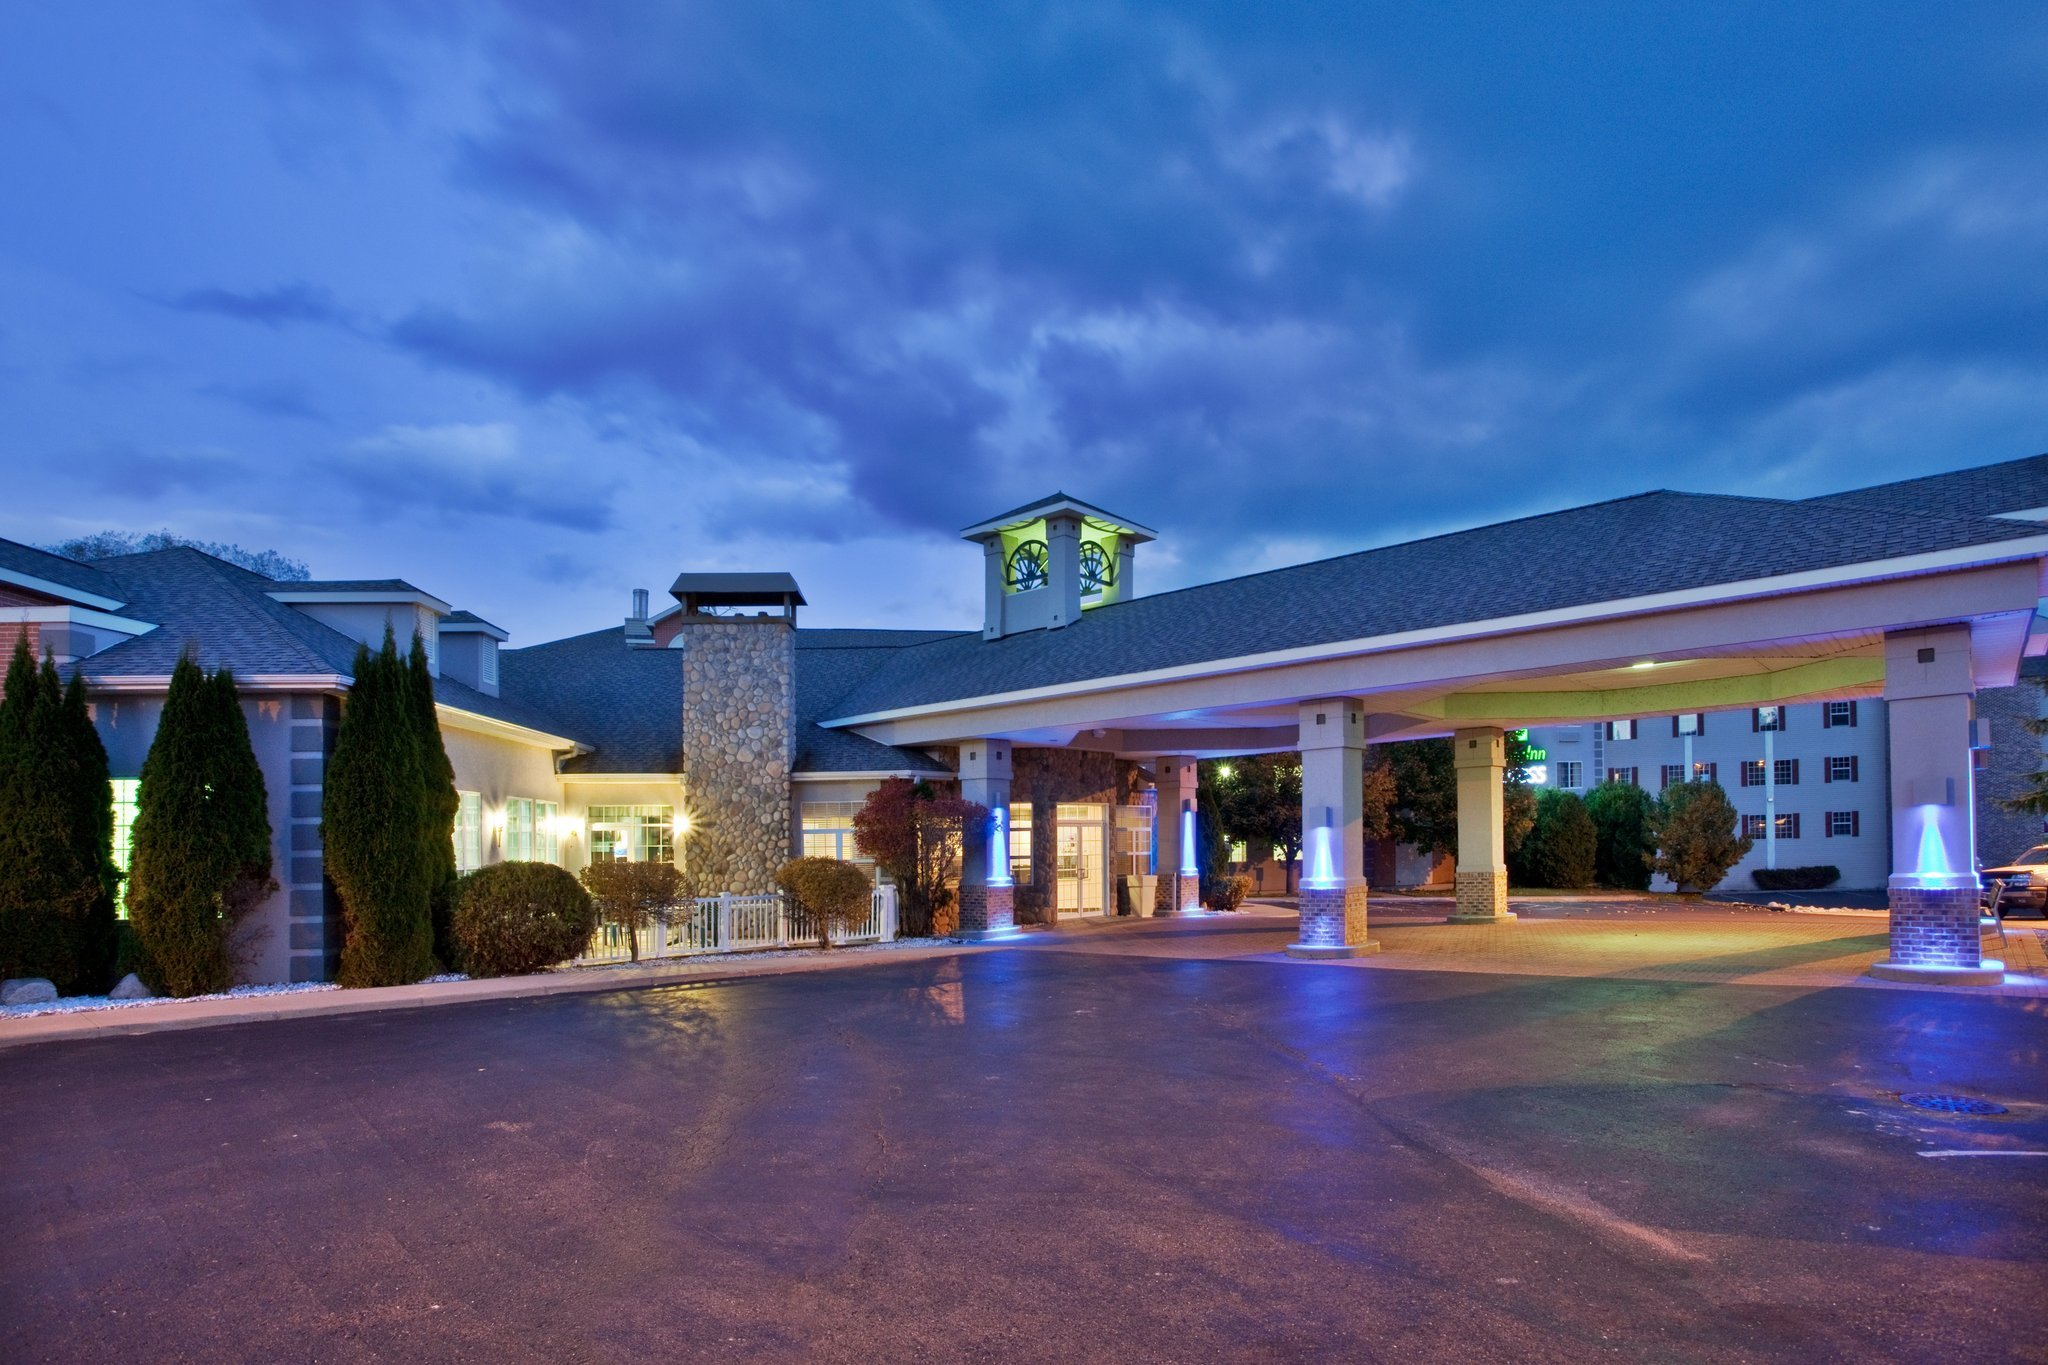 Holiday Inn Express St. Ignace